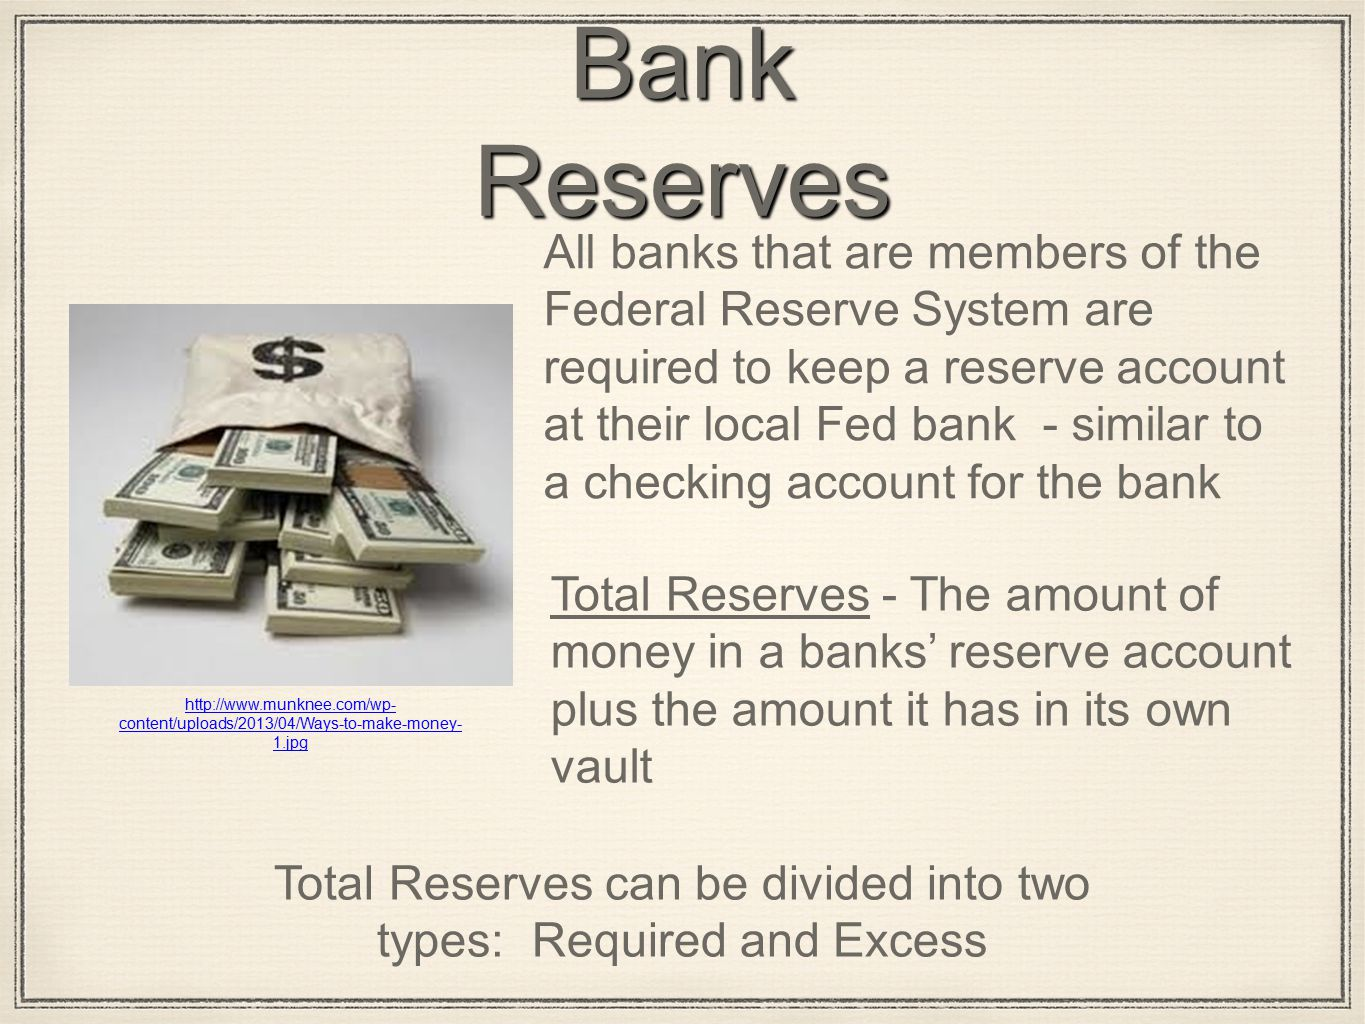 Bank Reserves   content/uploads/2013/04/Ways-to-make-money- 1.jpg All banks that are members of the Federal Reserve System are required to keep a reserve account at their local Fed bank - similar to a checking account for the bank Total Reserves - The amount of money in a banks' reserve account plus the amount it has in its own vault Total Reserves can be divided into two types: Required and Excess